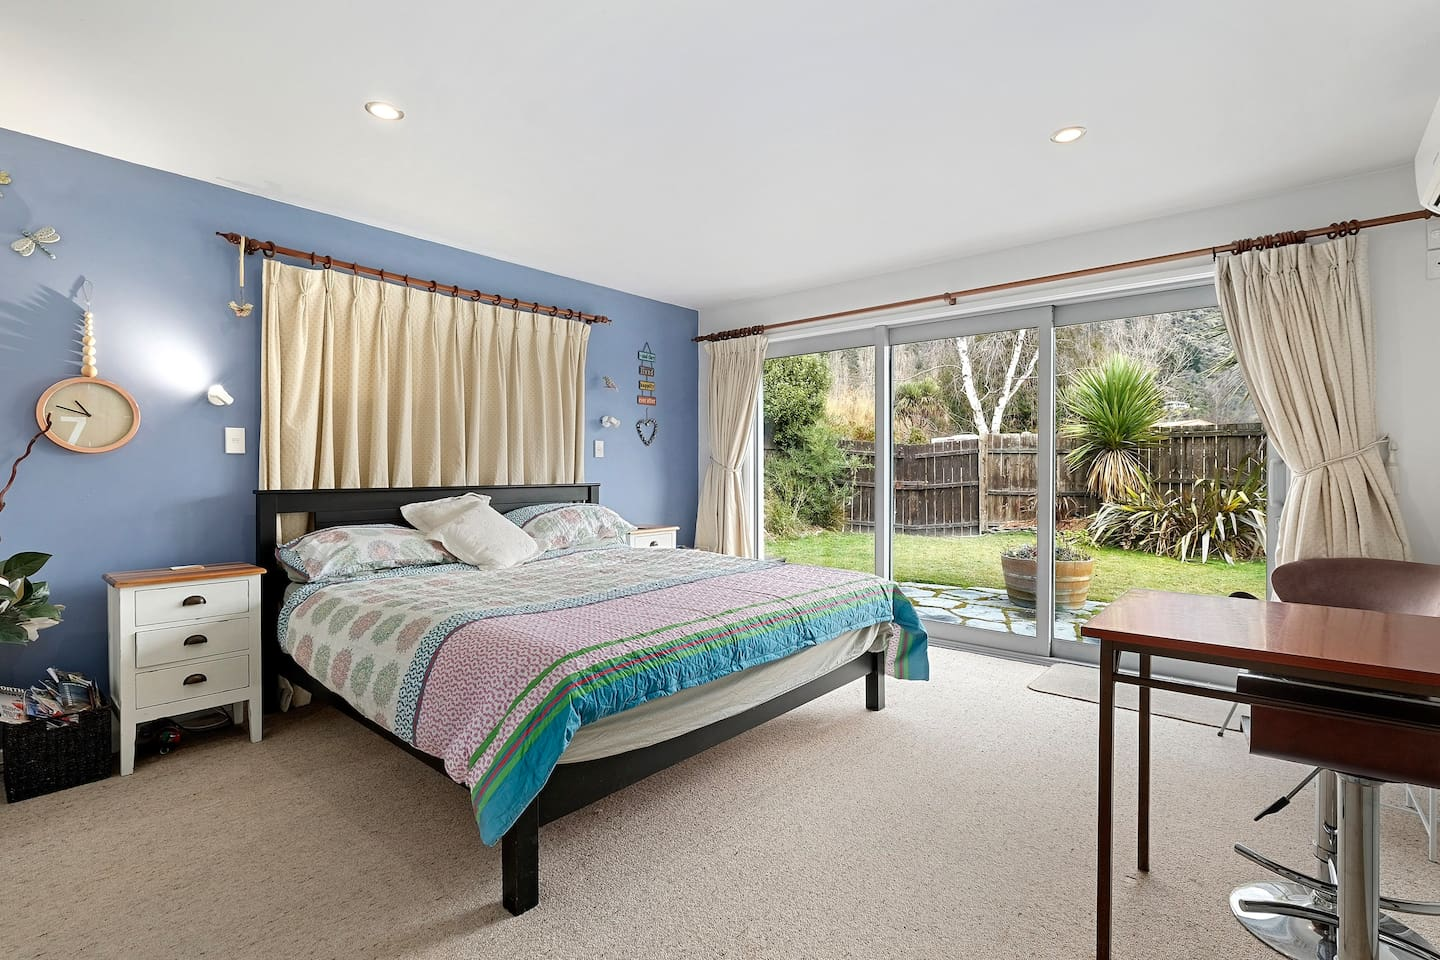 Super calm, super cosy, super-king bed, New Ecosa mattress (firm). Spacious room, aircon, outdoor space. Relax and enjoy!